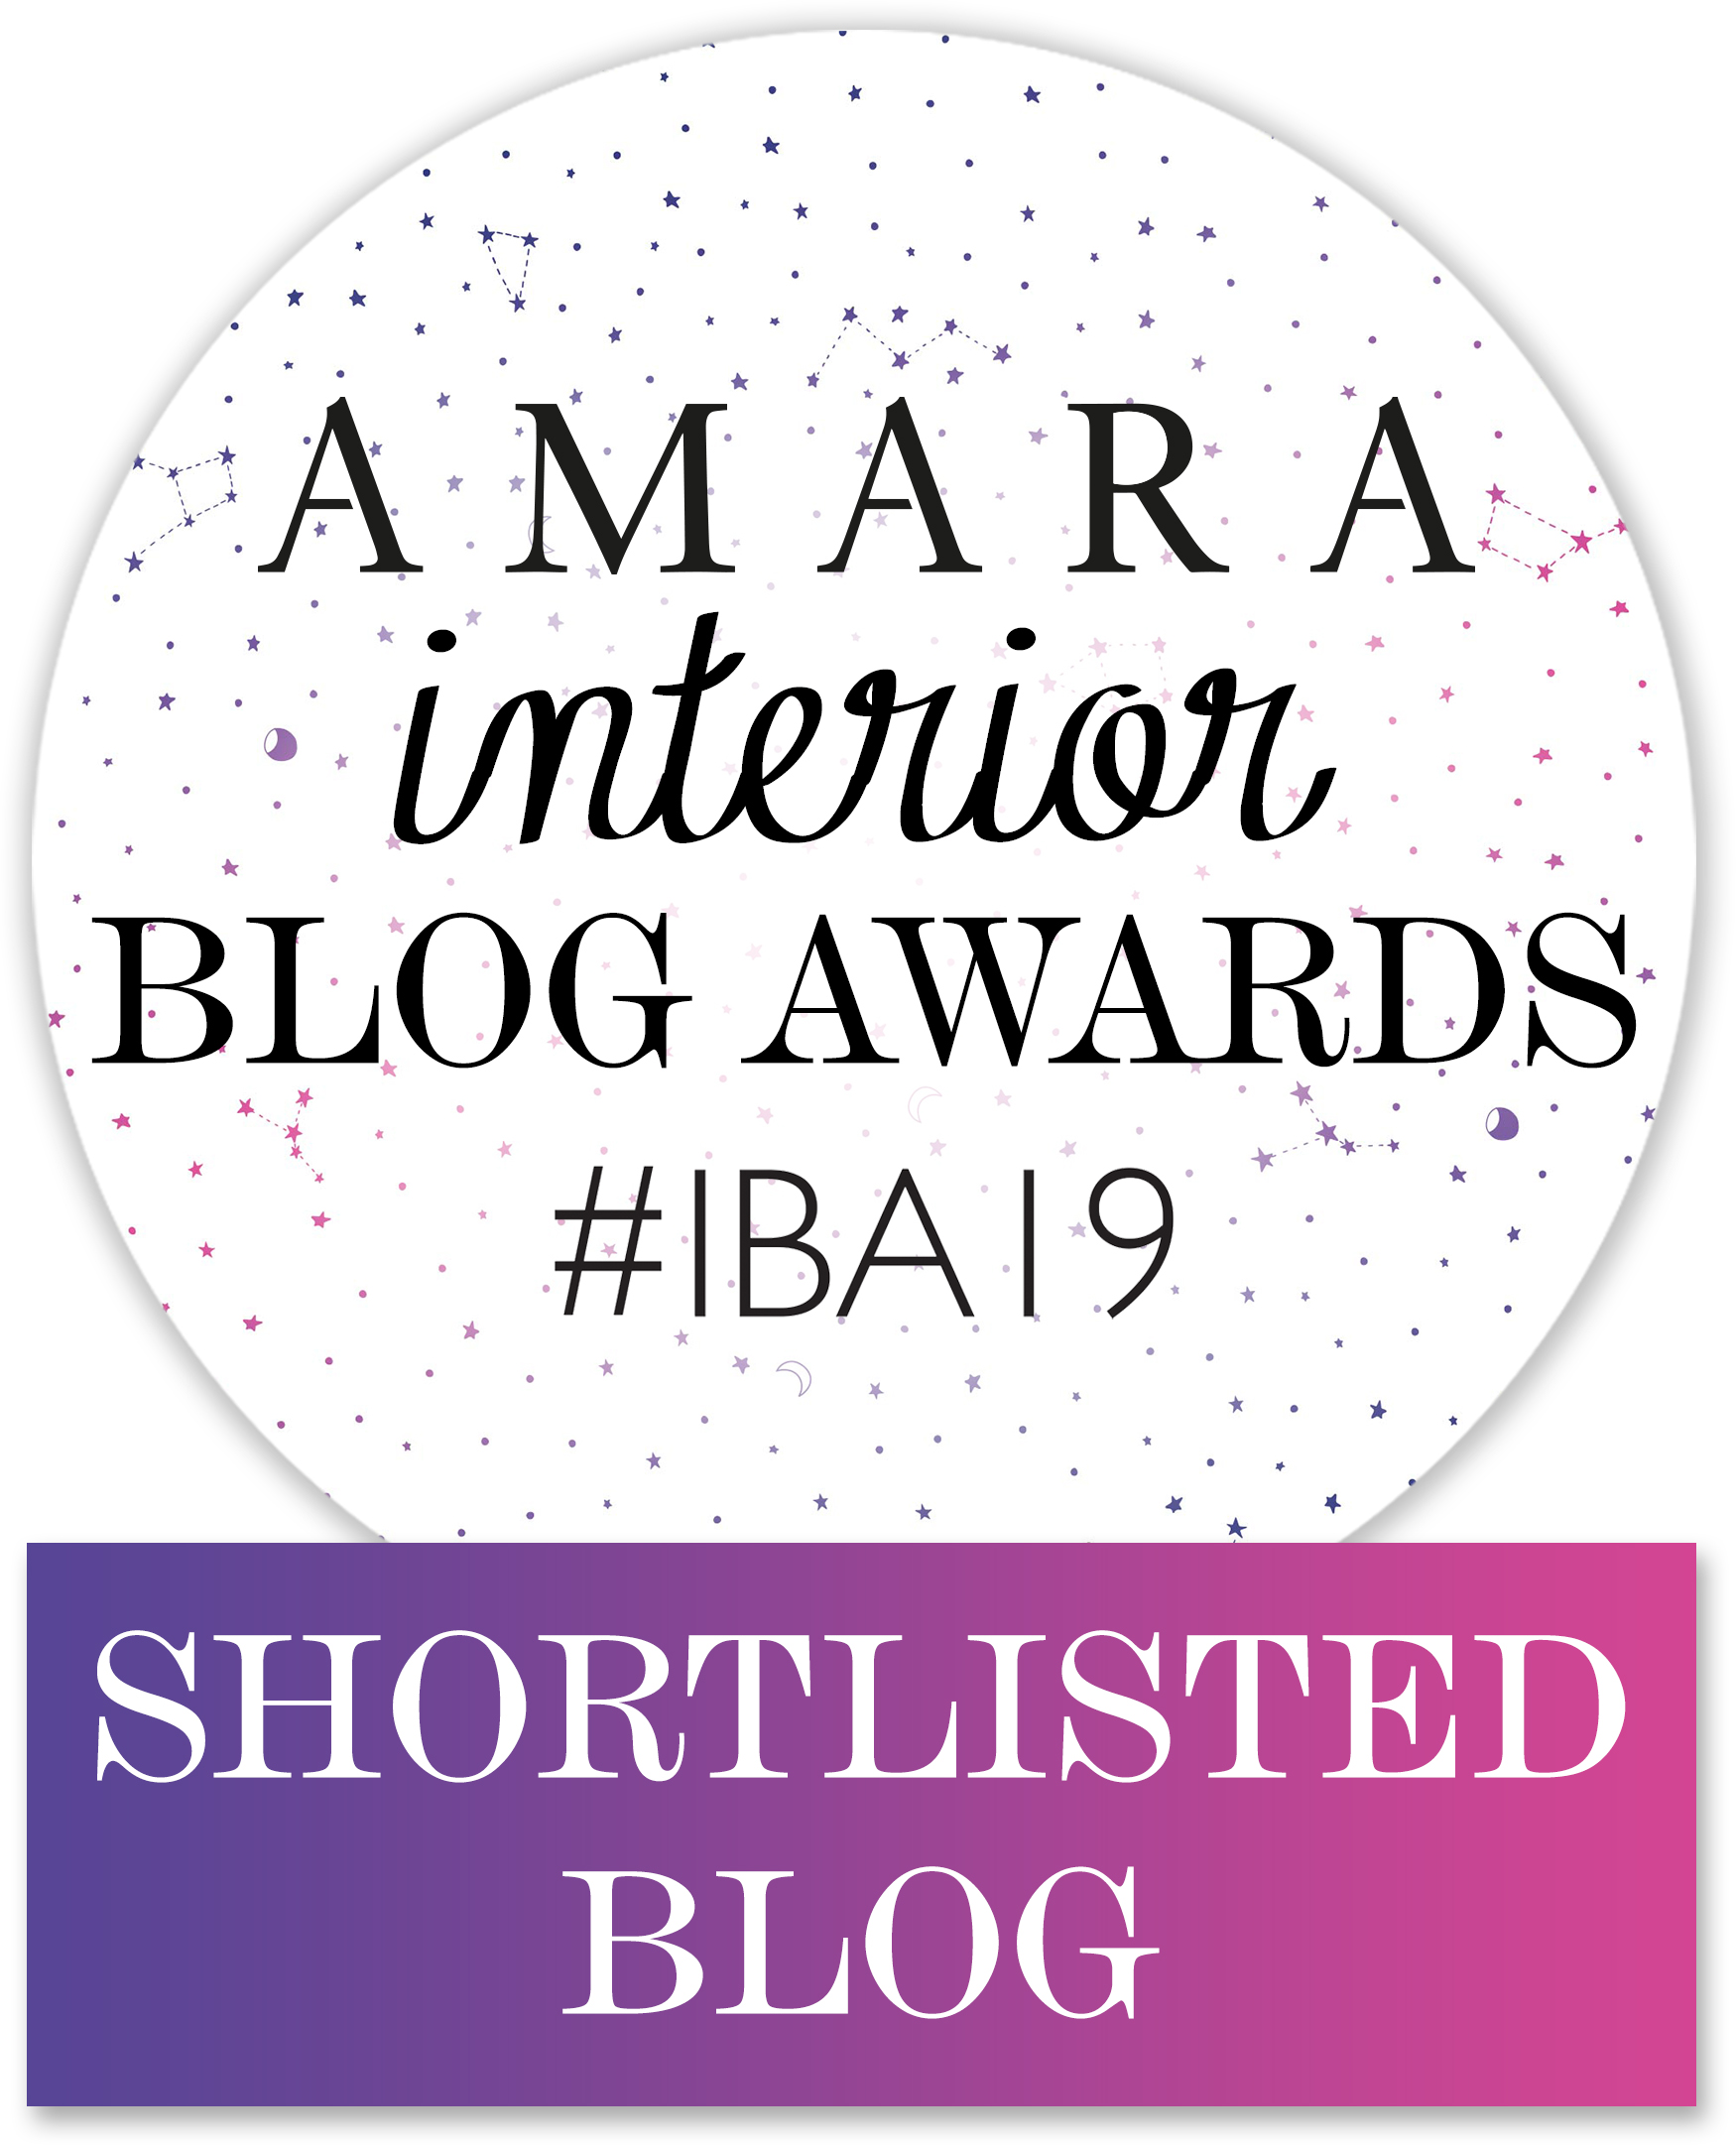 amara interior blog awards shortlist badge